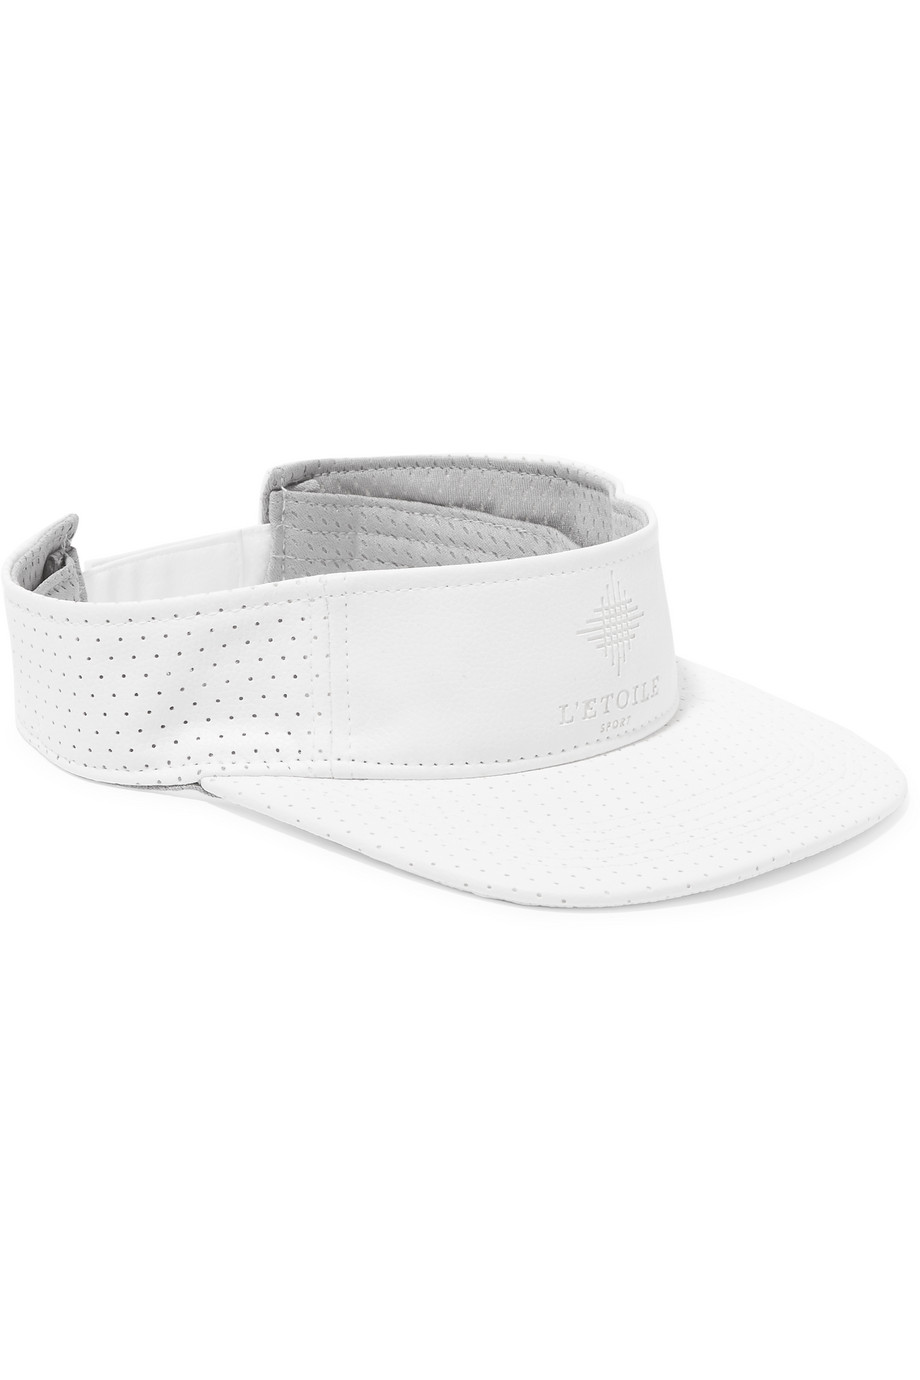 L'etoile Sport Perforated Faux Leather Visor, White, Women's, Size: One size